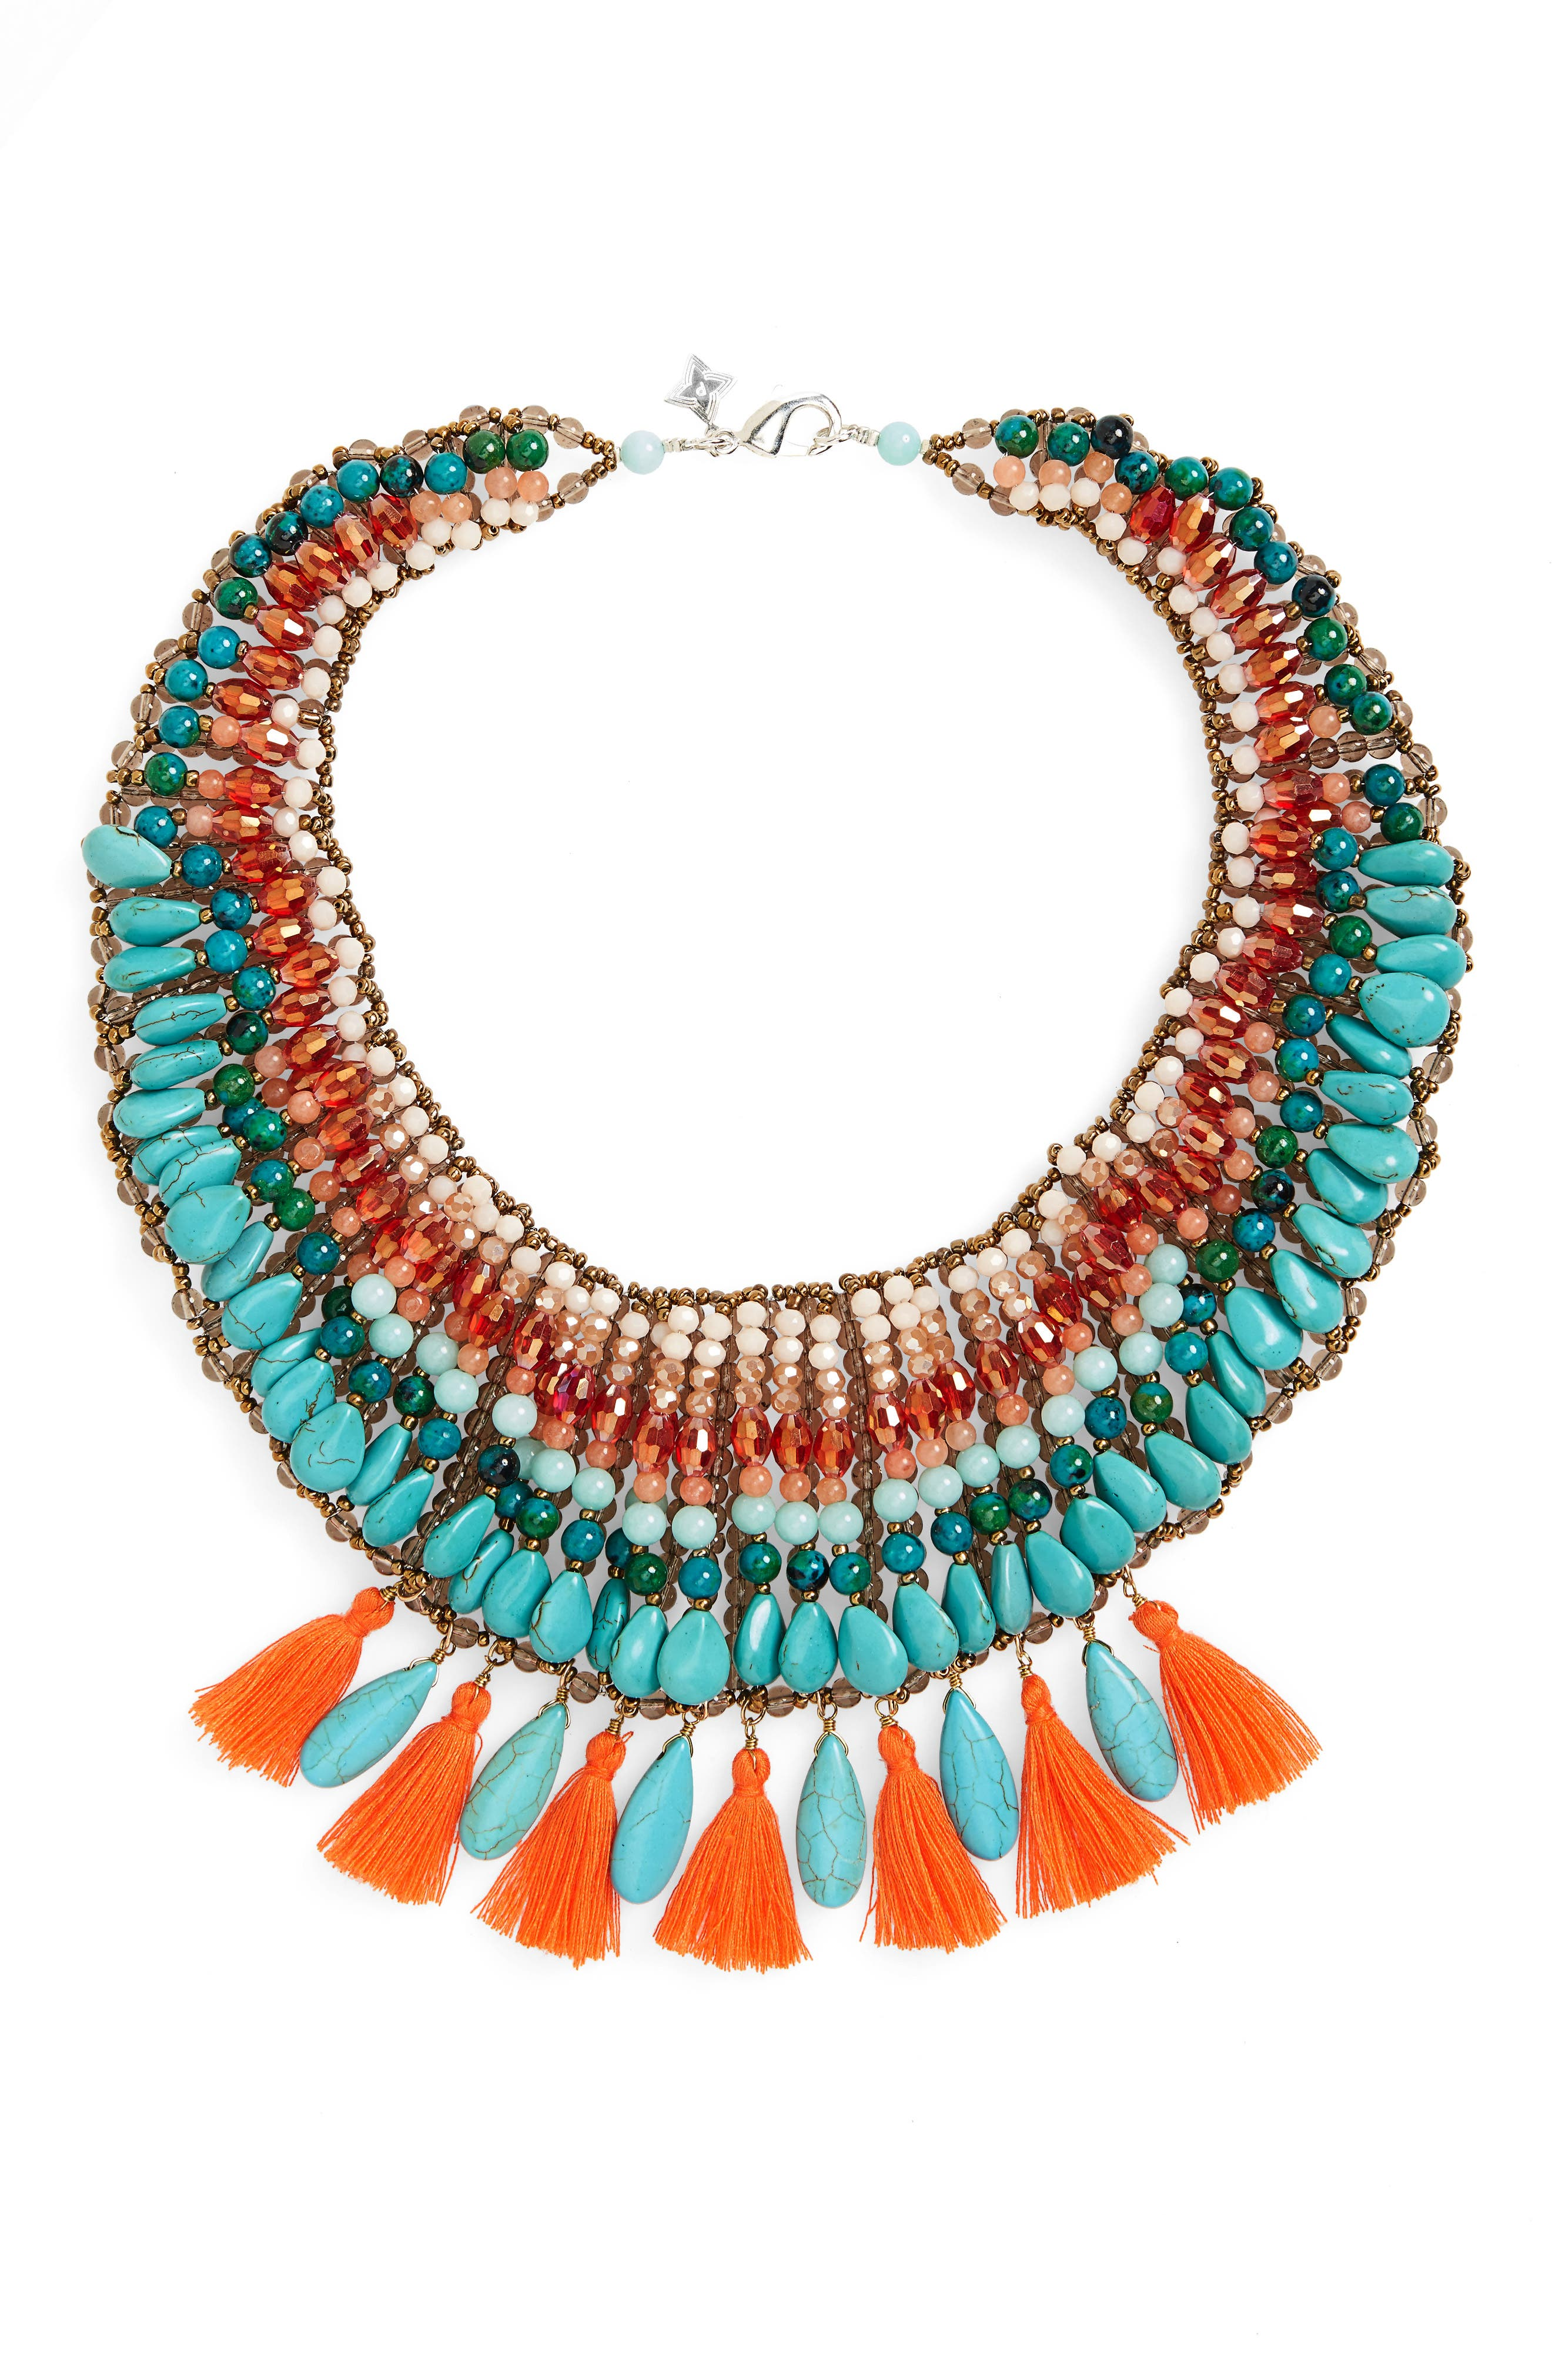 Alternate Image 1 Selected - Panacea Tassel & Stone Statement Necklace